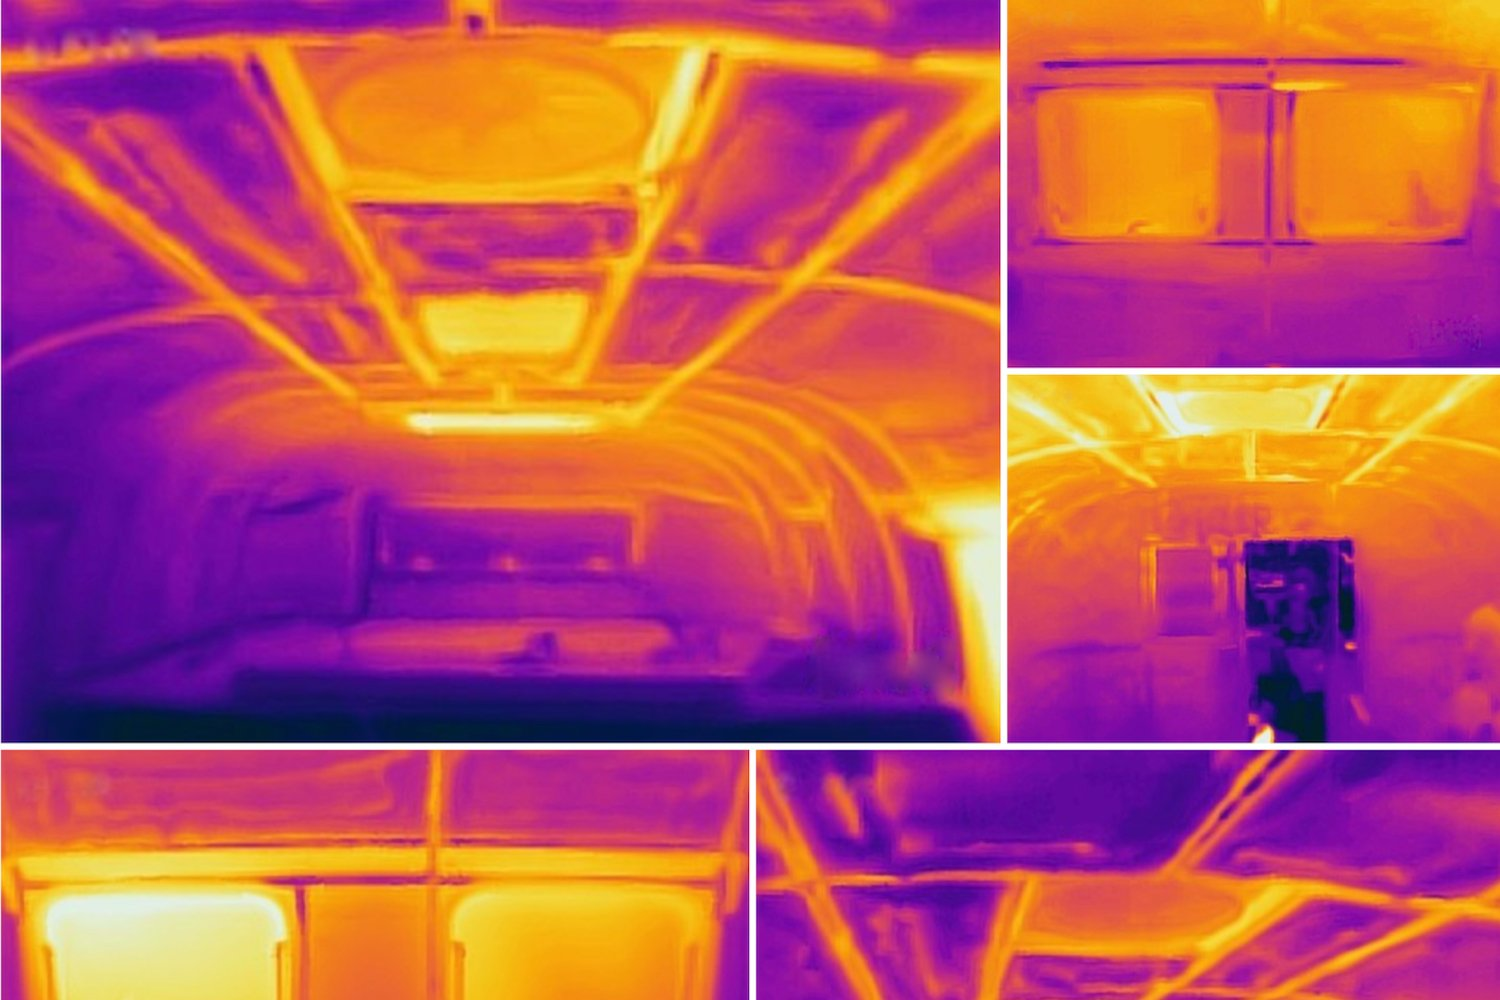 thermal images of camper interior